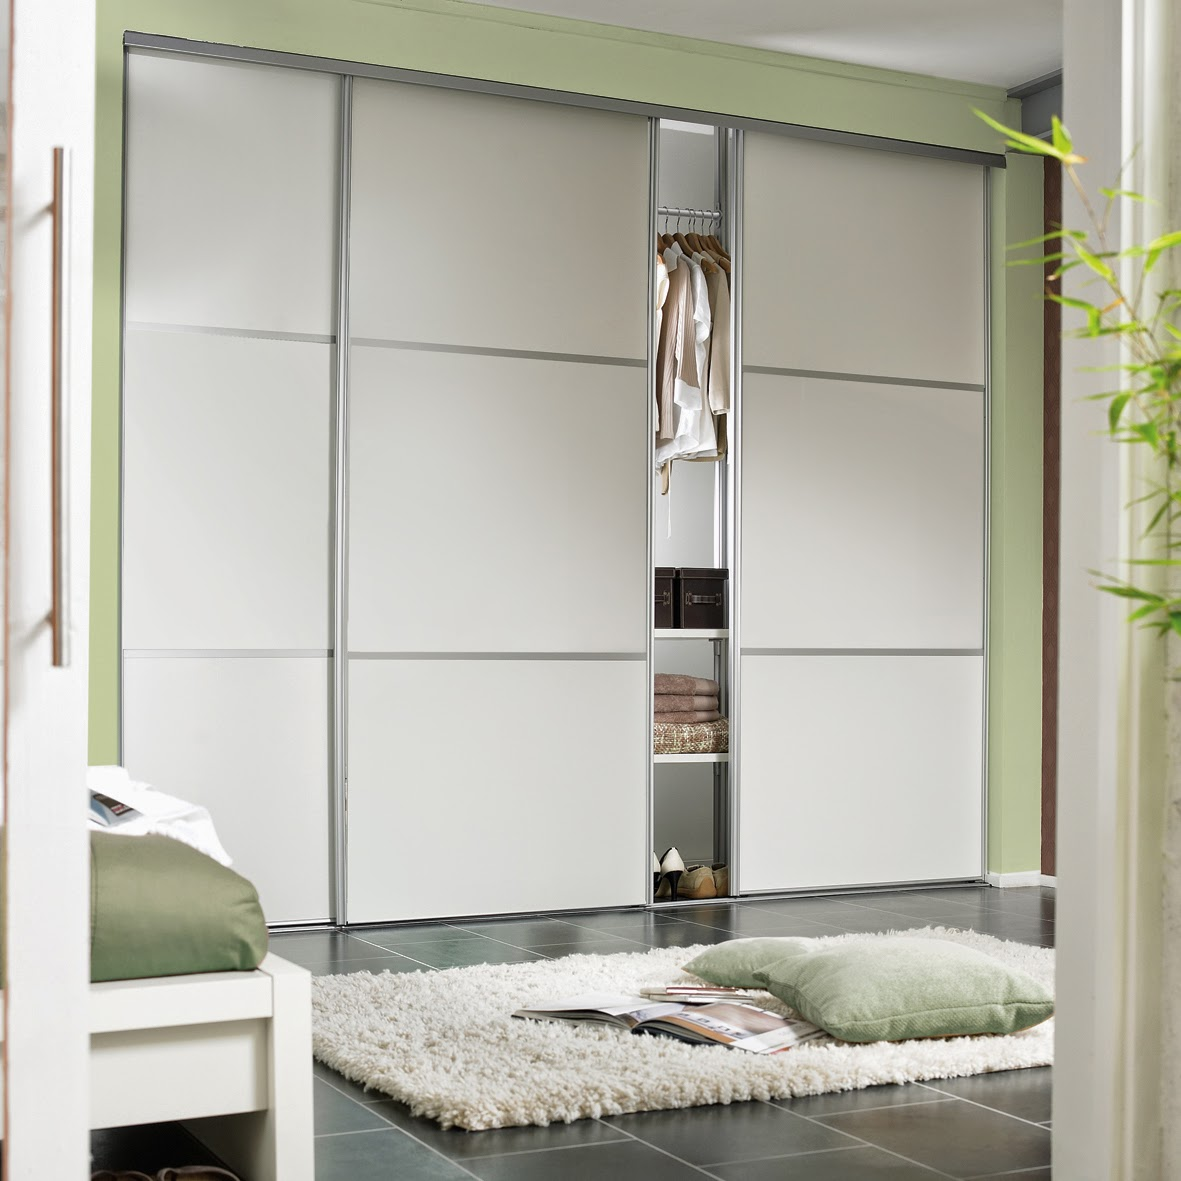 Le Meilleur Bedrooms Plus Sliding Wardrobe Doors And Fittings How To Ce Mois Ci